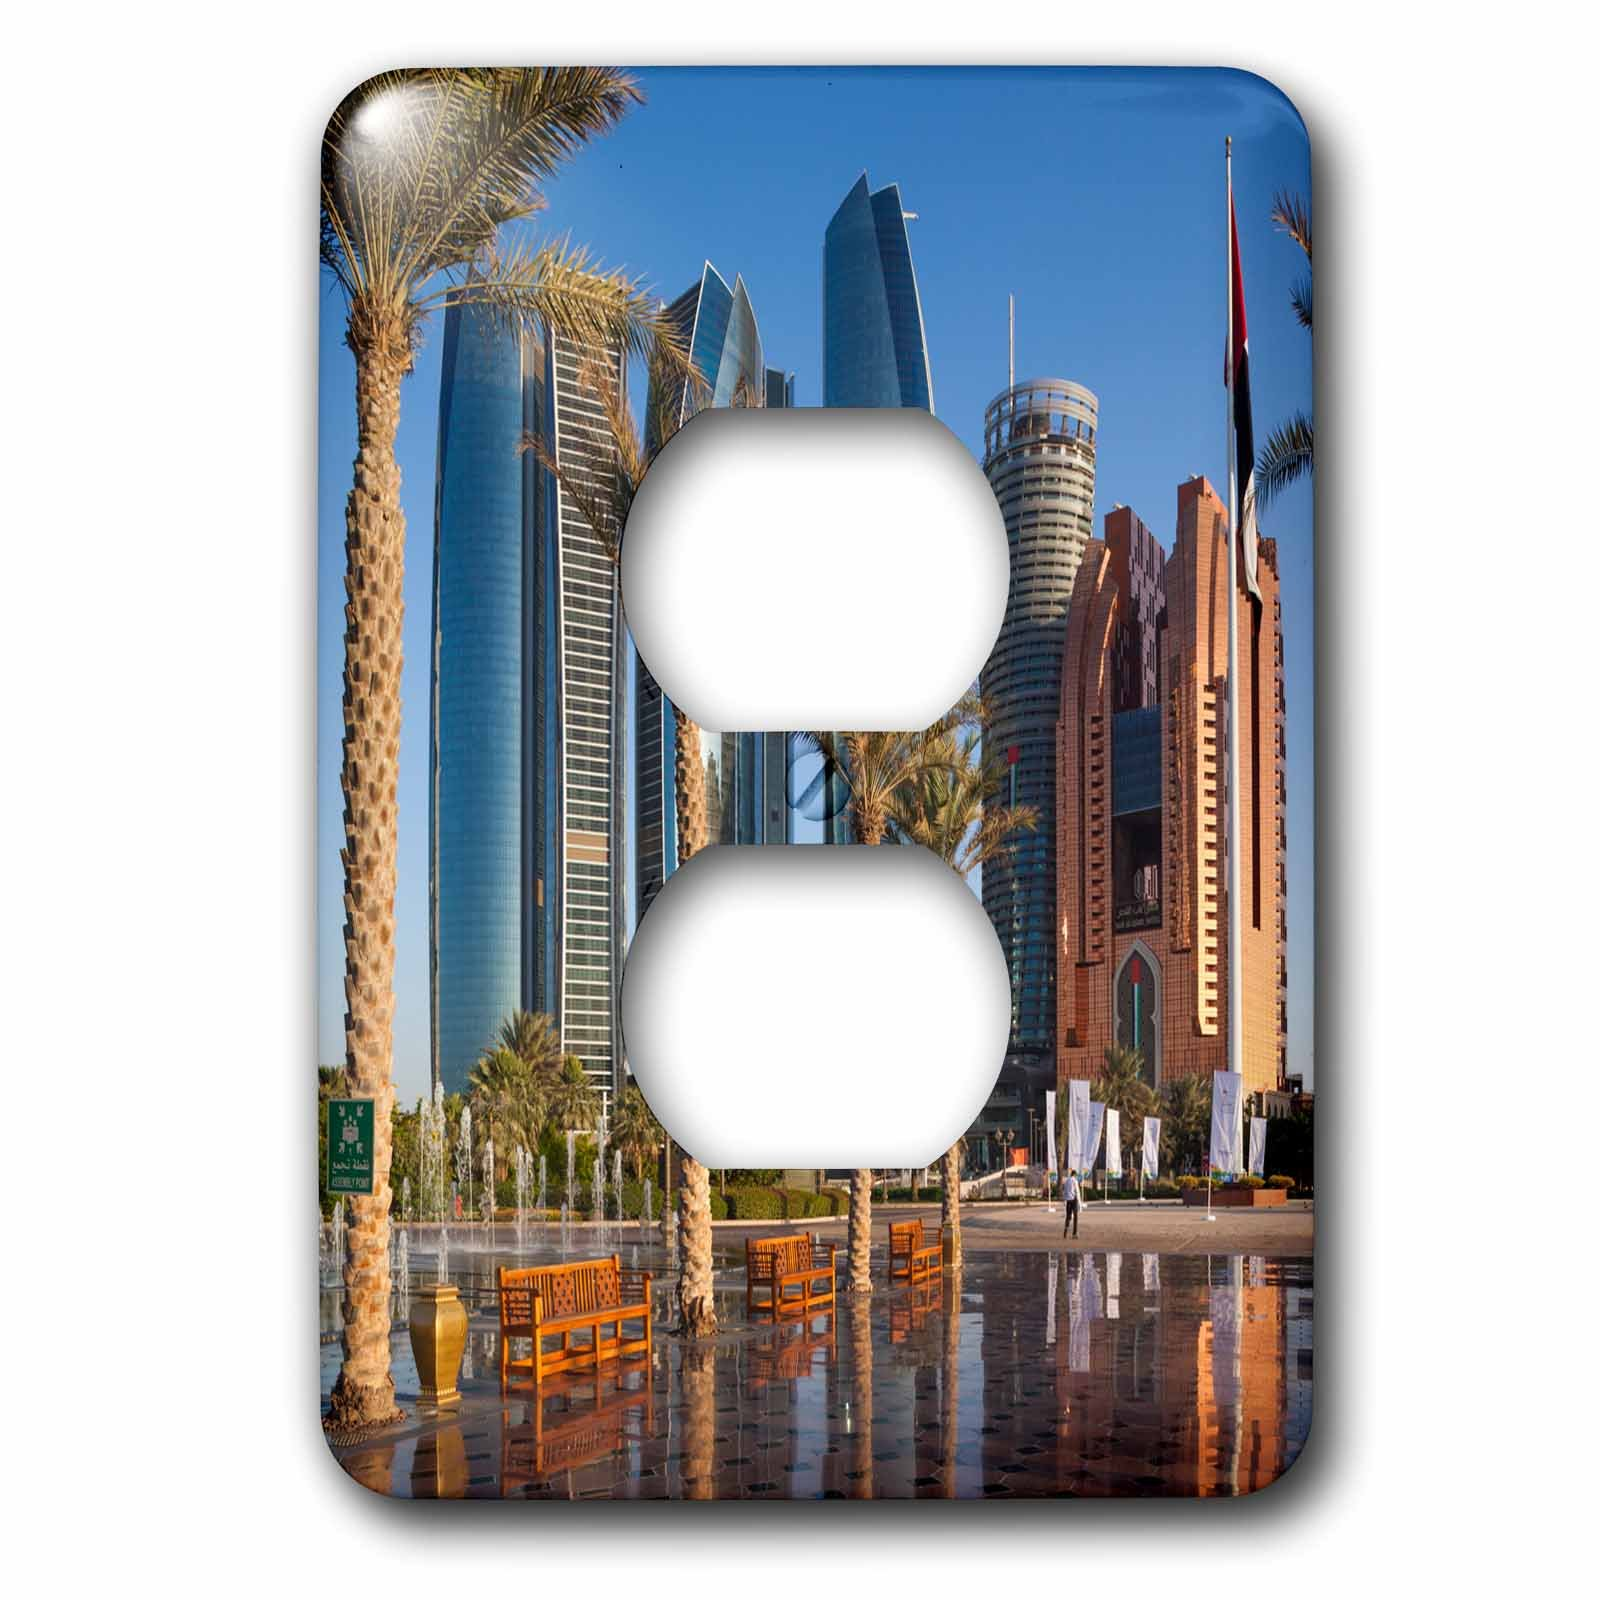 3dRose Danita Delimont - Cities - UAE, Abu Dhabi. Etihad Towers and Emirates Palace Hotel fountains - Light Switch Covers - 2 plug outlet cover (lsp_277135_6)